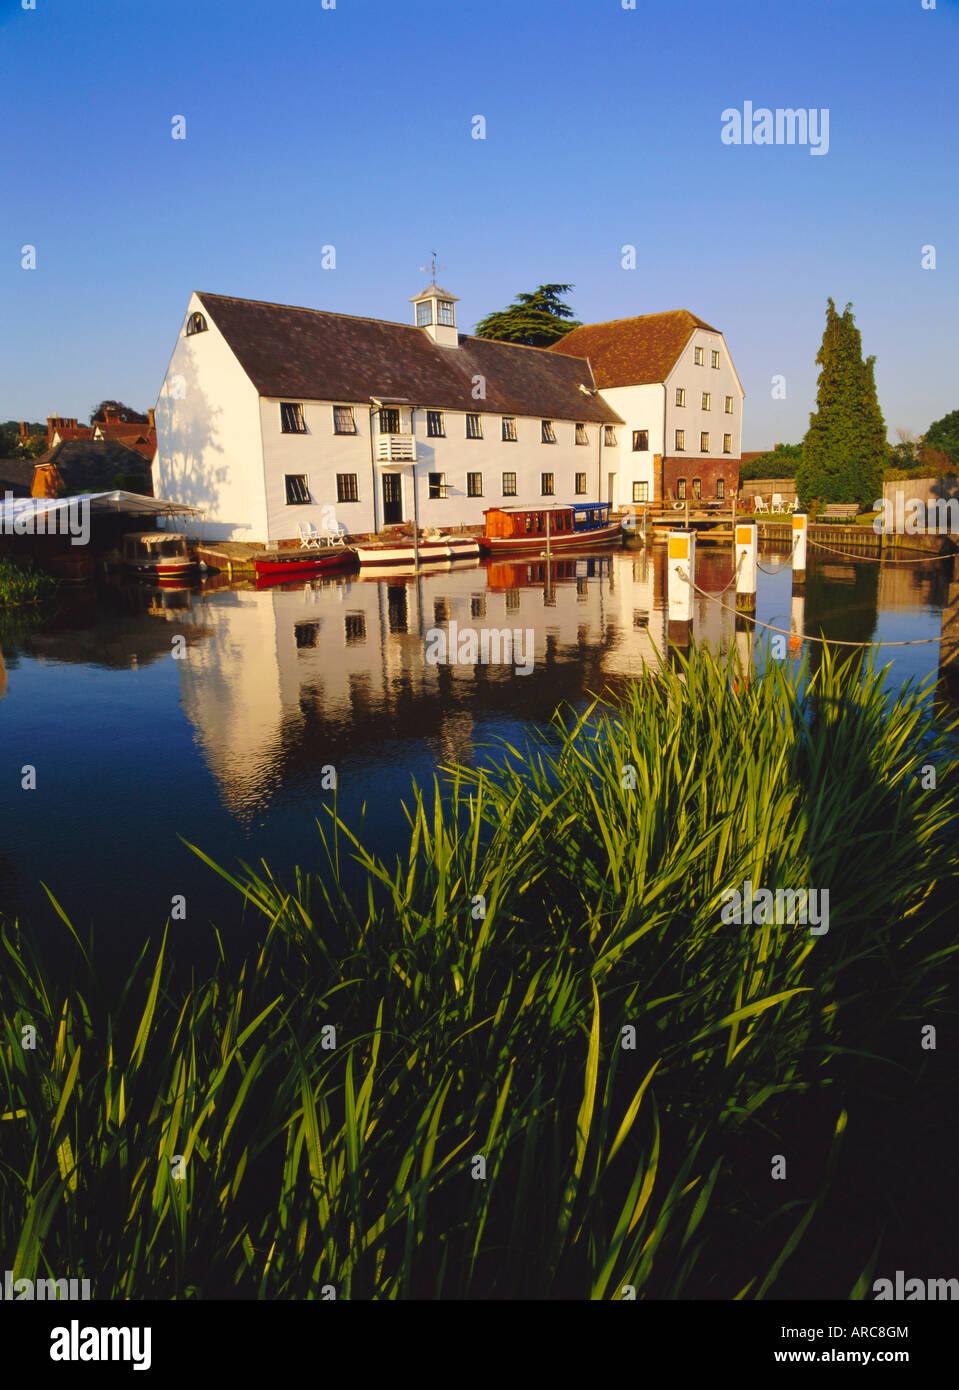 Hambleden Mill on the River Thames, Buckinghamshire, England, UK, Europe - Stock Image